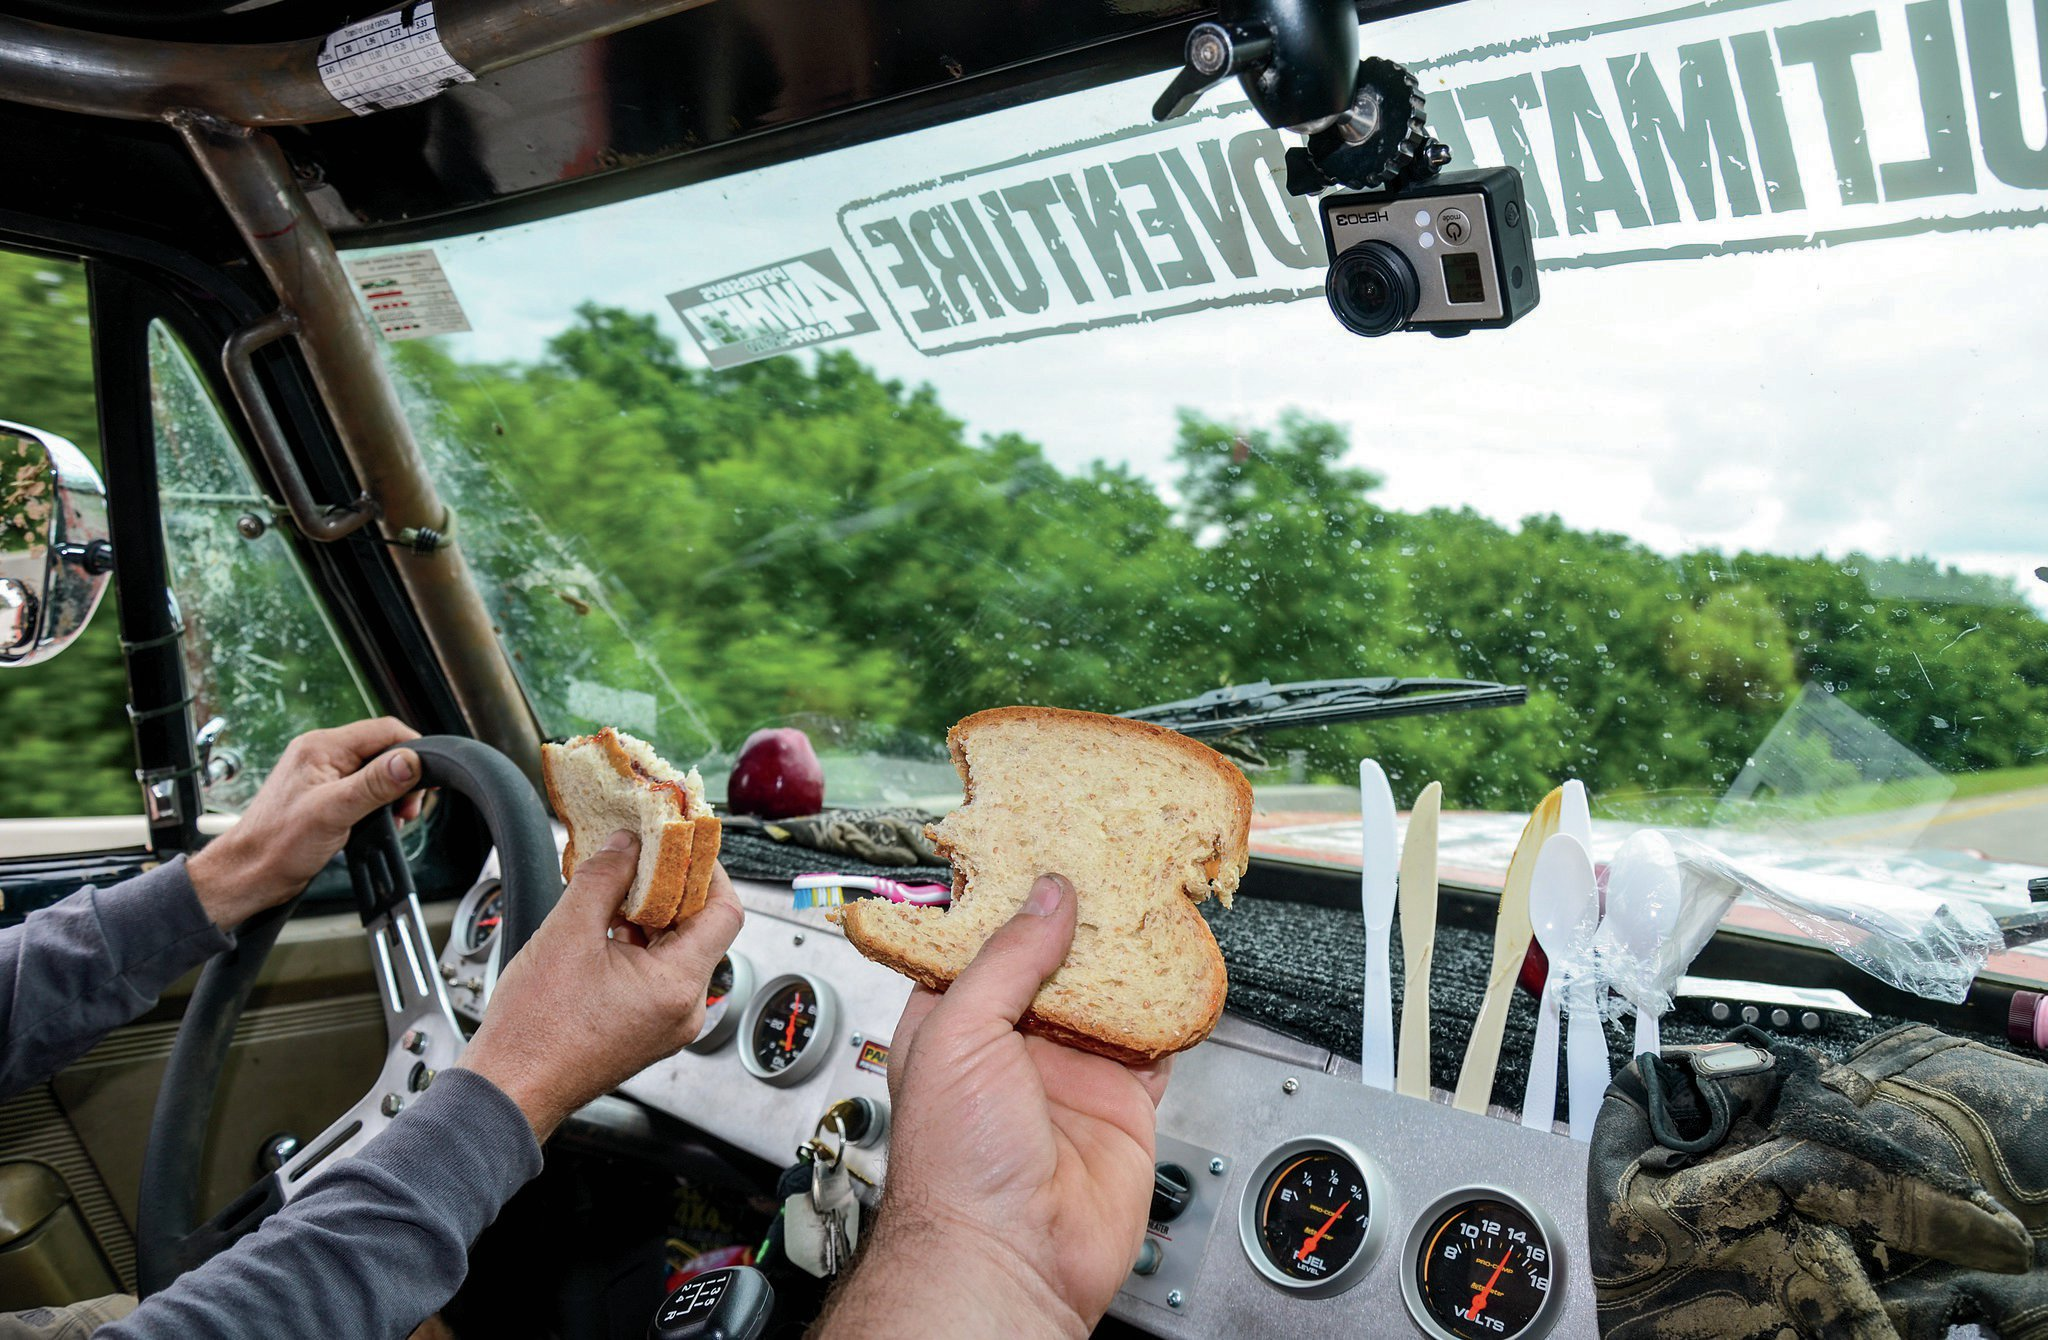 Living out of a truck for a week is fun, and keeping things in their place is key. The Tug-Truck had a pantry under the driver seat, and we used the flat dash (with custom dash pad) as a countertop to make sandwiches. The dash also turned out to be a great place to store our silverware and other items. Living out of a flatfender or a Suzuki is more of a challenge, but it works.